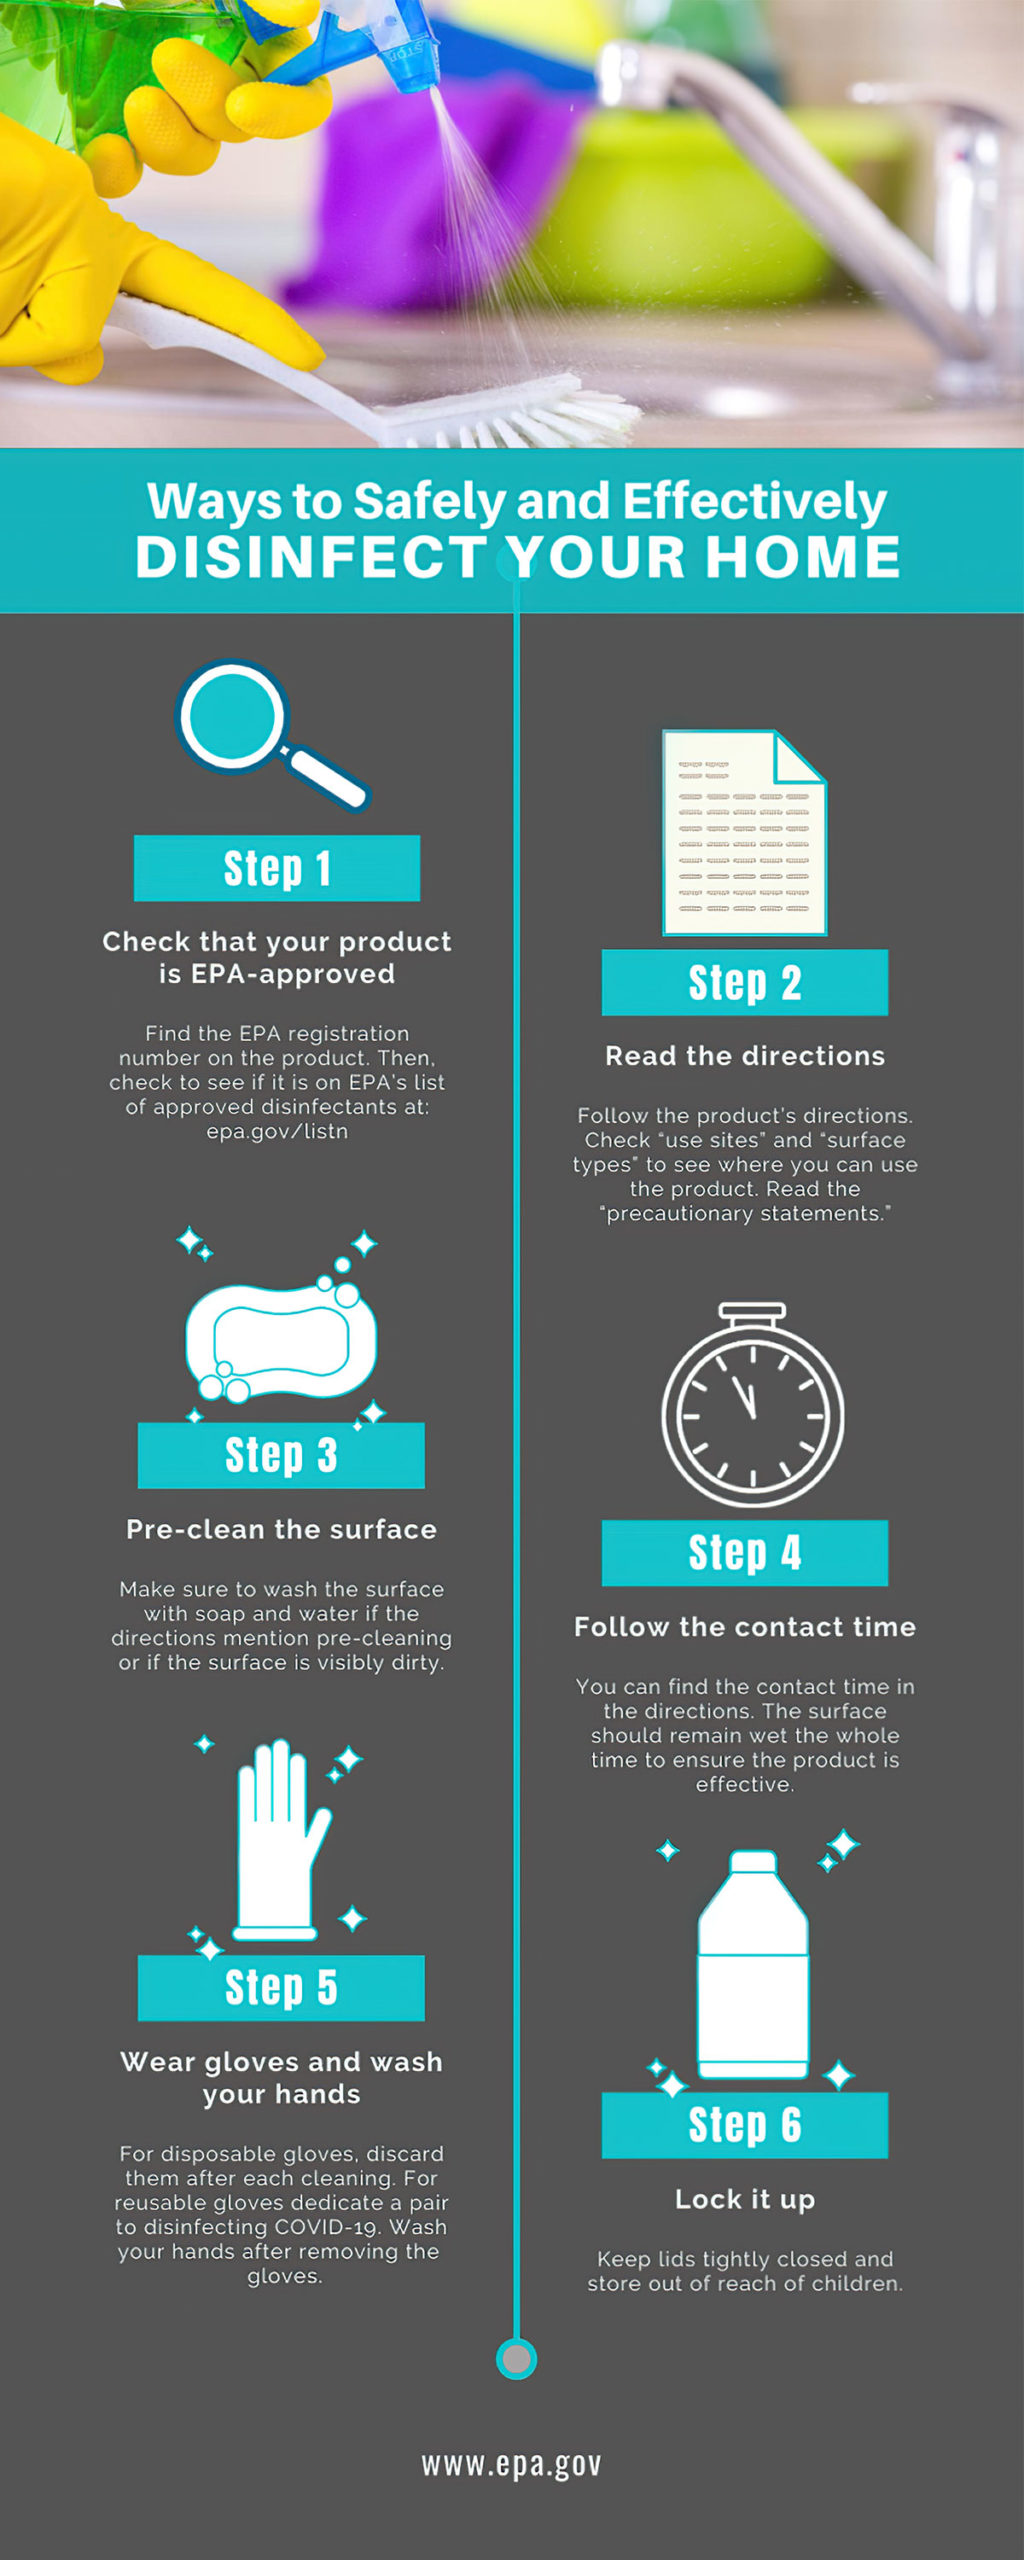 ways to safely and effectively disinfect your home infographic